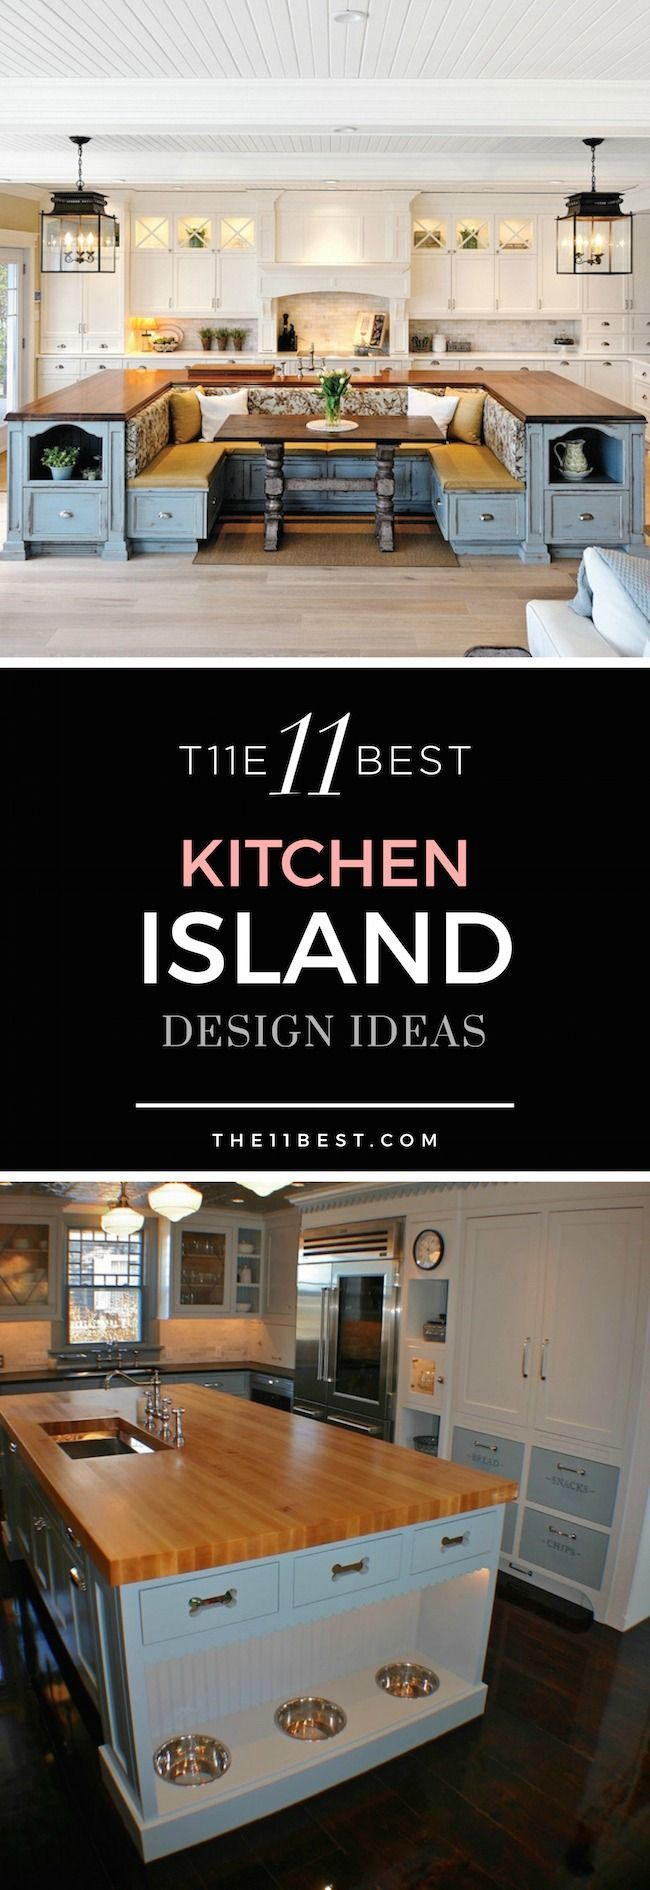 Kitchen make your kitchen dazzle with pertaining to kitchen design - The 11 Best Kitchen Island Design Ideas For Your Home